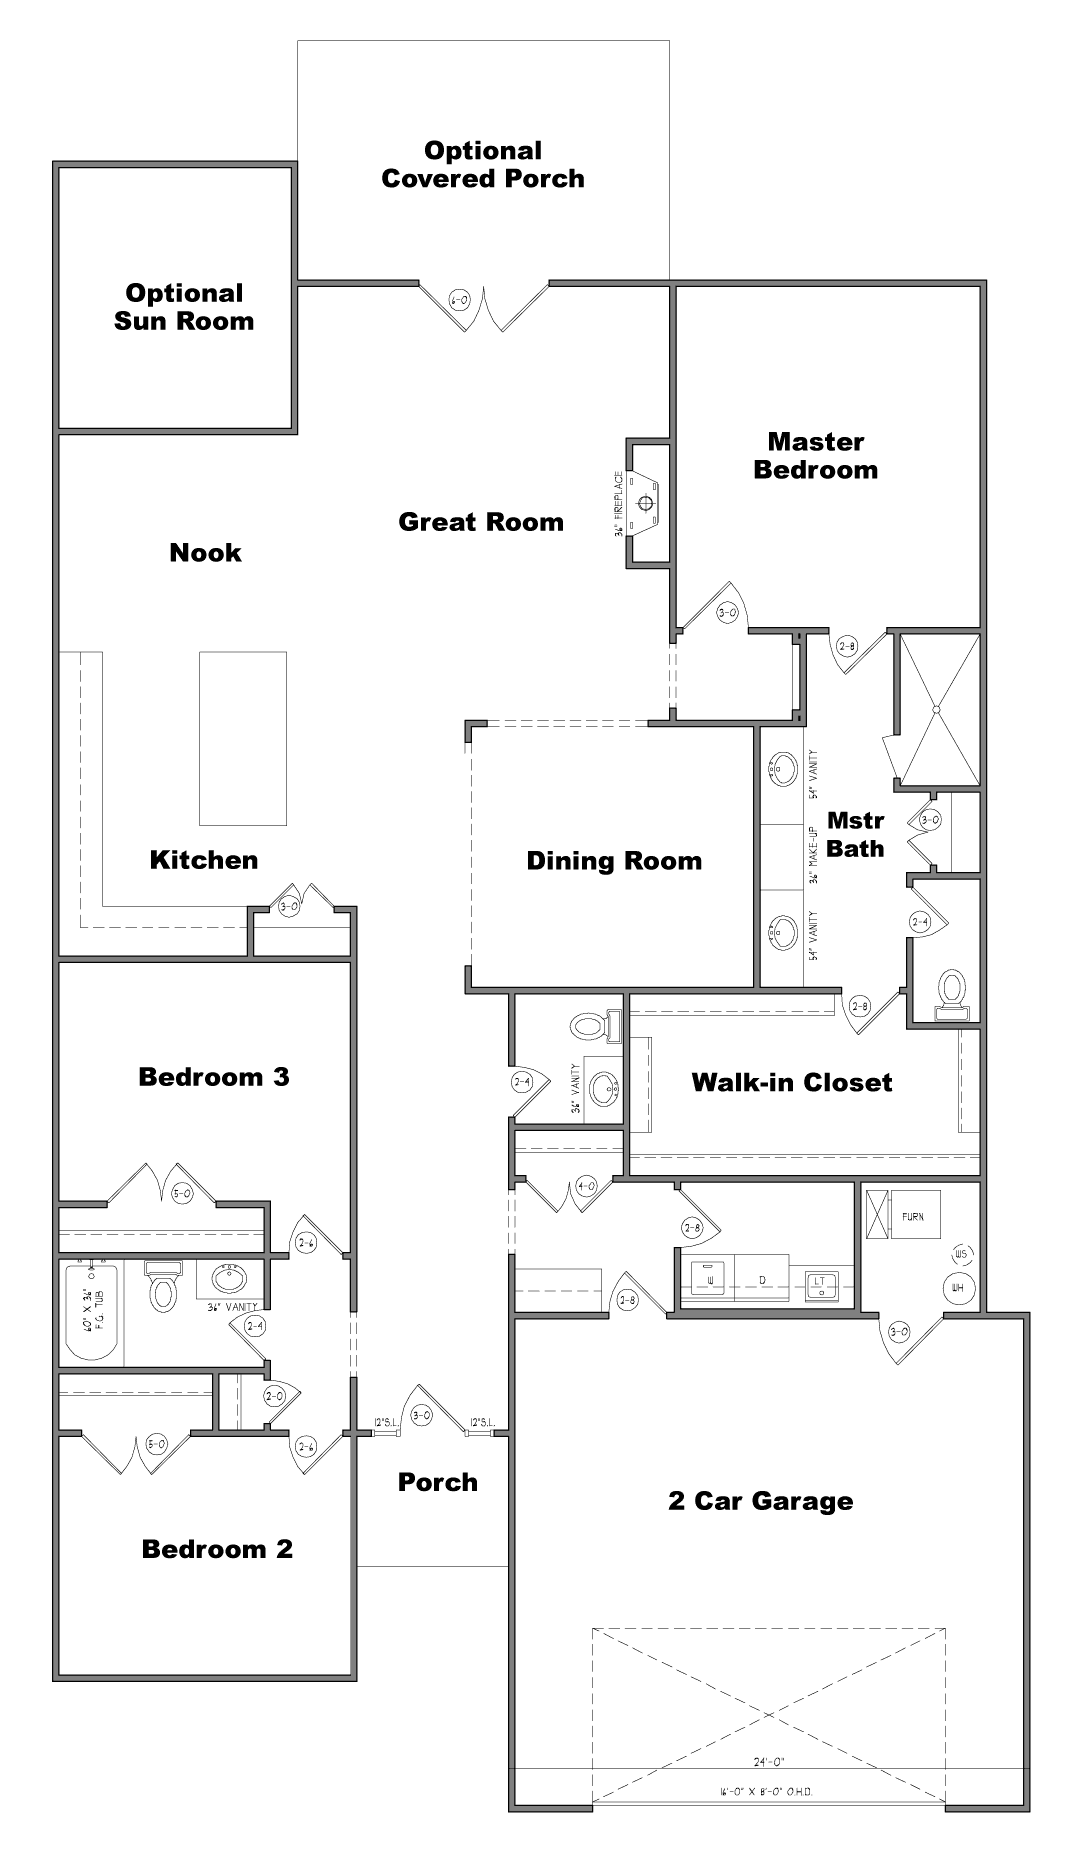 But That Doesnu0027t Mean You Canu0027t Borrow Ideas To Expand Your Imagination.  Need A Spark Of Inspiration? Take A Look At Some Of Our Previous Floorplans.